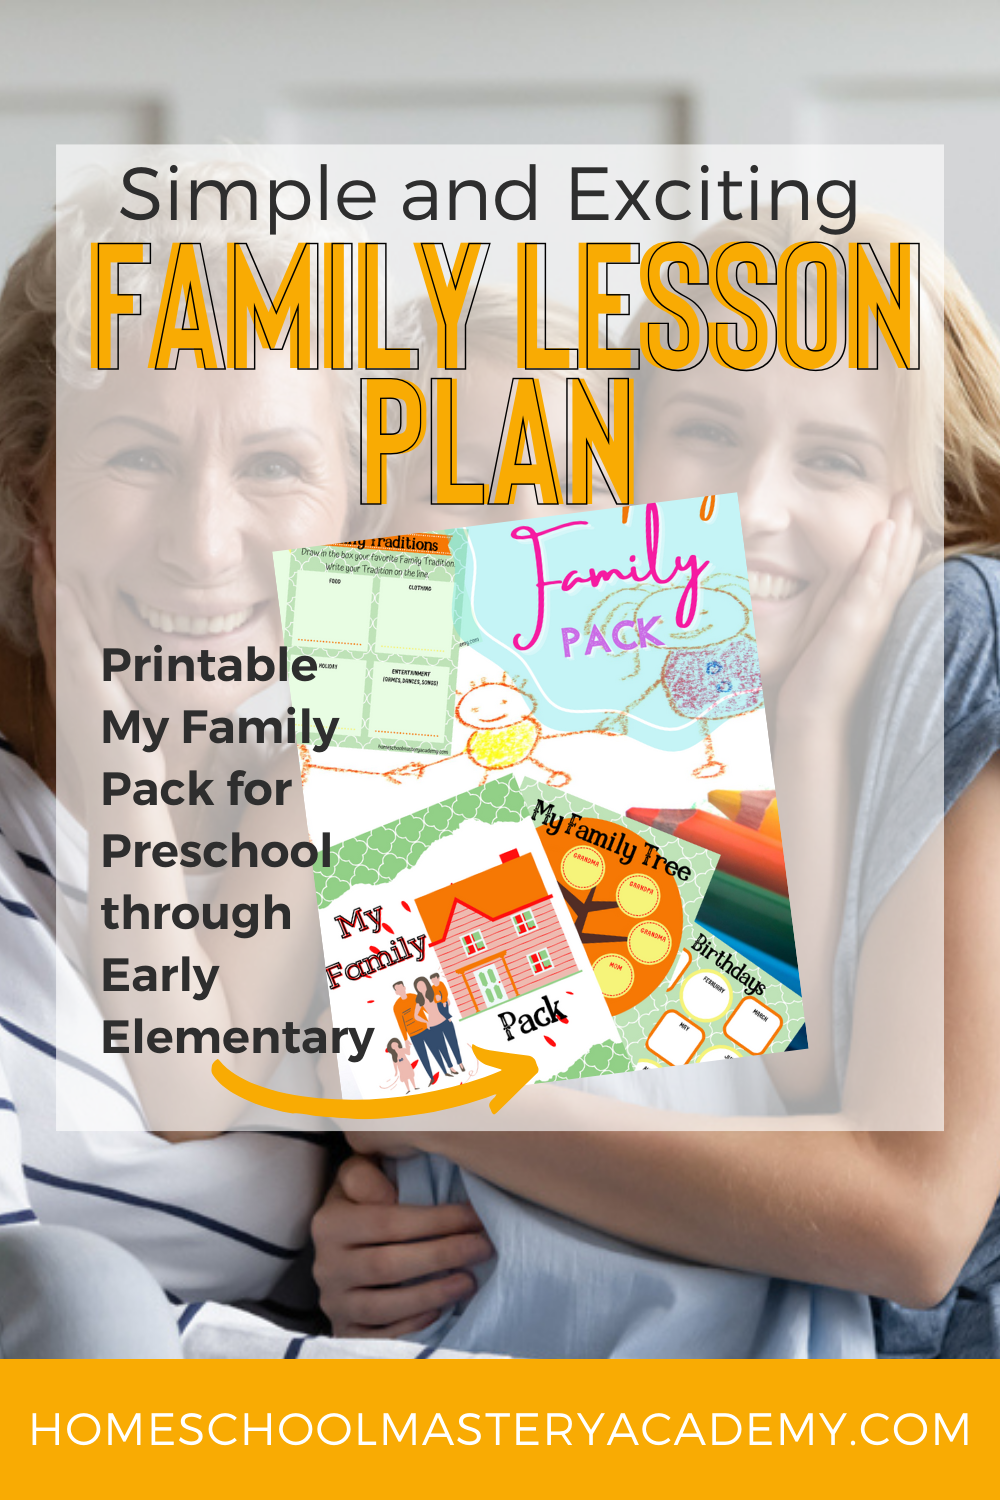 Family Lesson Plan for Kindergarten - A full printable pack for learning all about your unique family for children preschool through early elementary. #myfamily #family #preschool #kindergarten #lessonplans #firstgrade